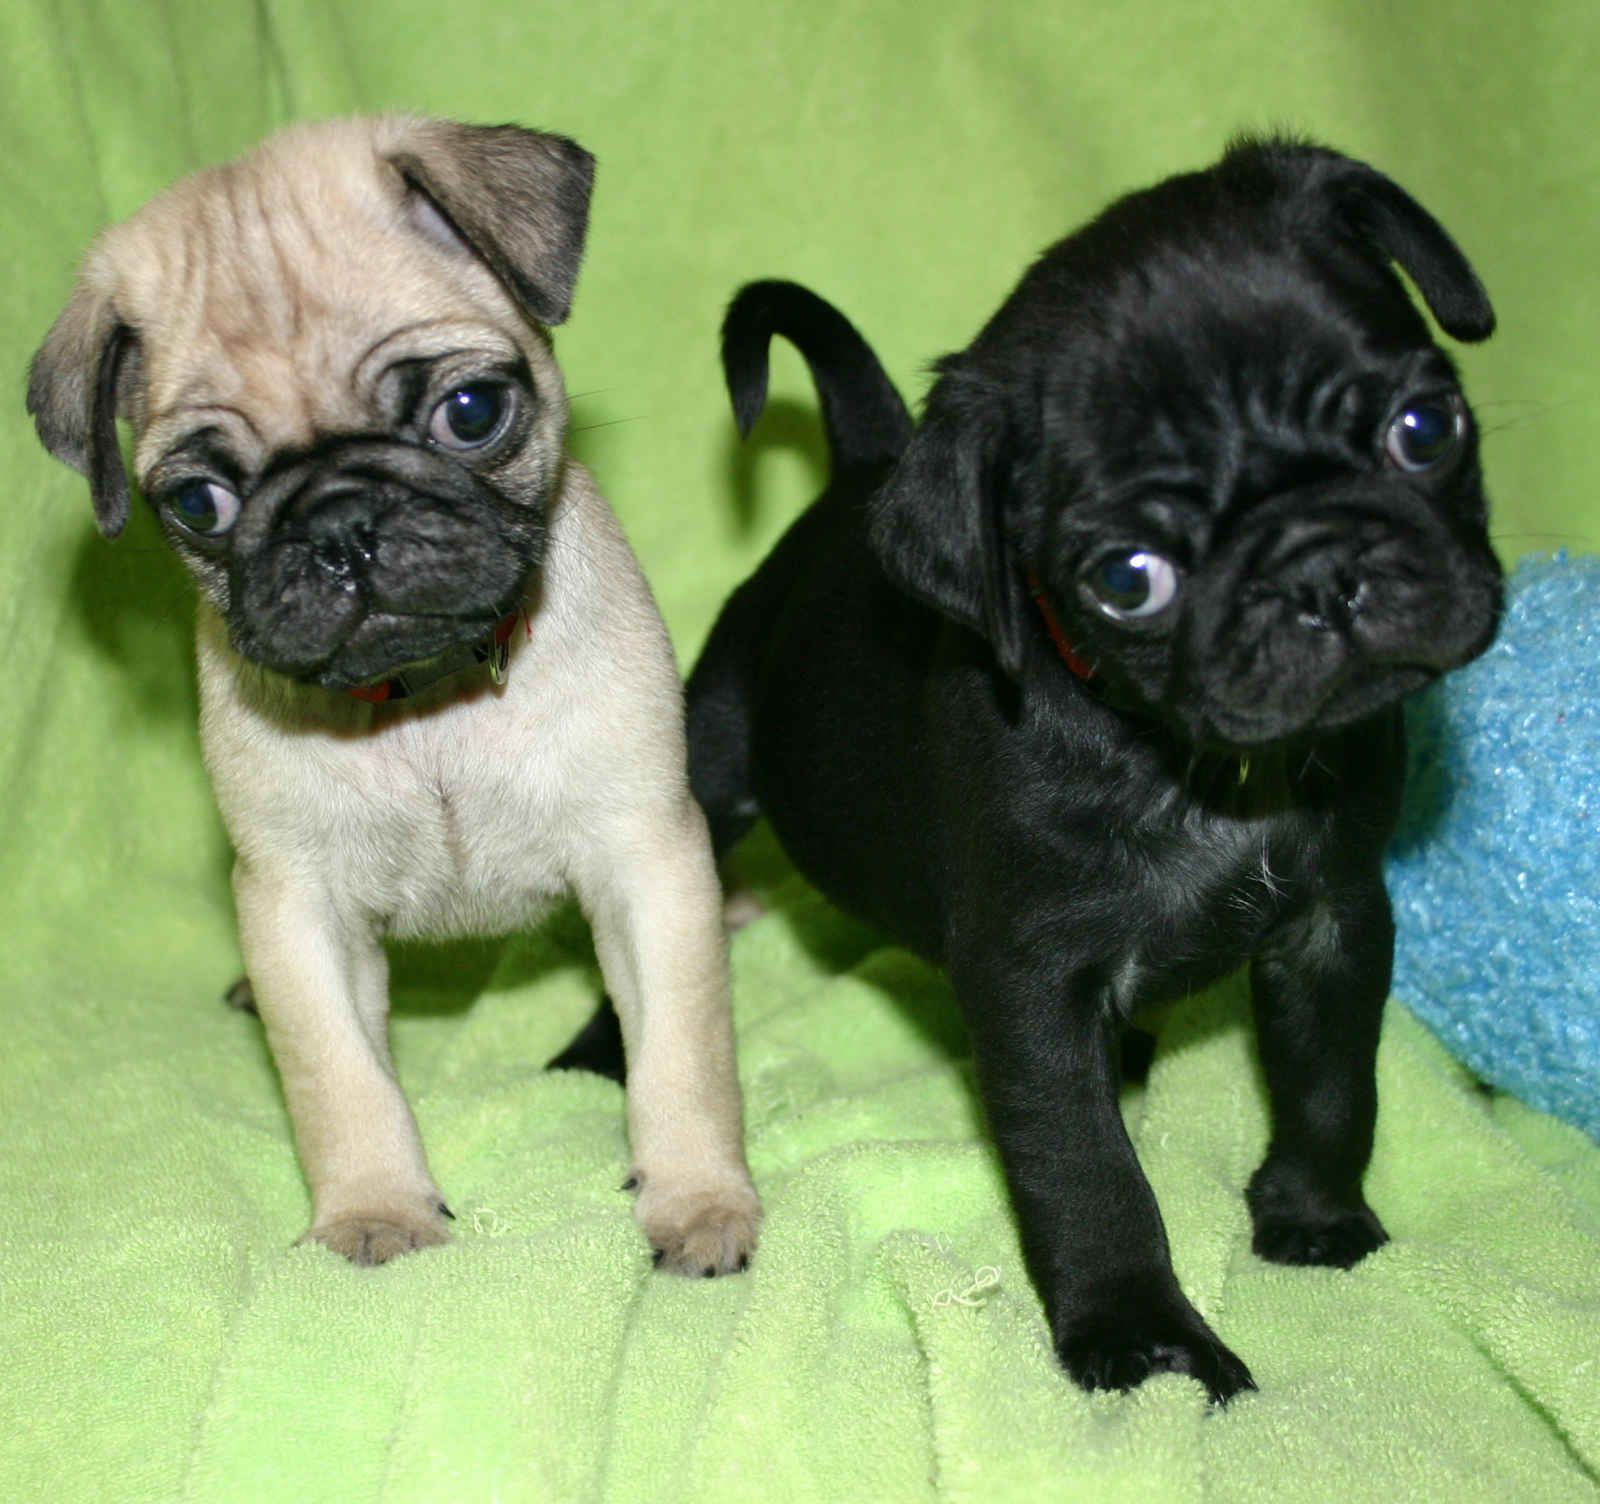 Cute Puppy Dogs Black Pug Puppies Oh The Cuteness Pug